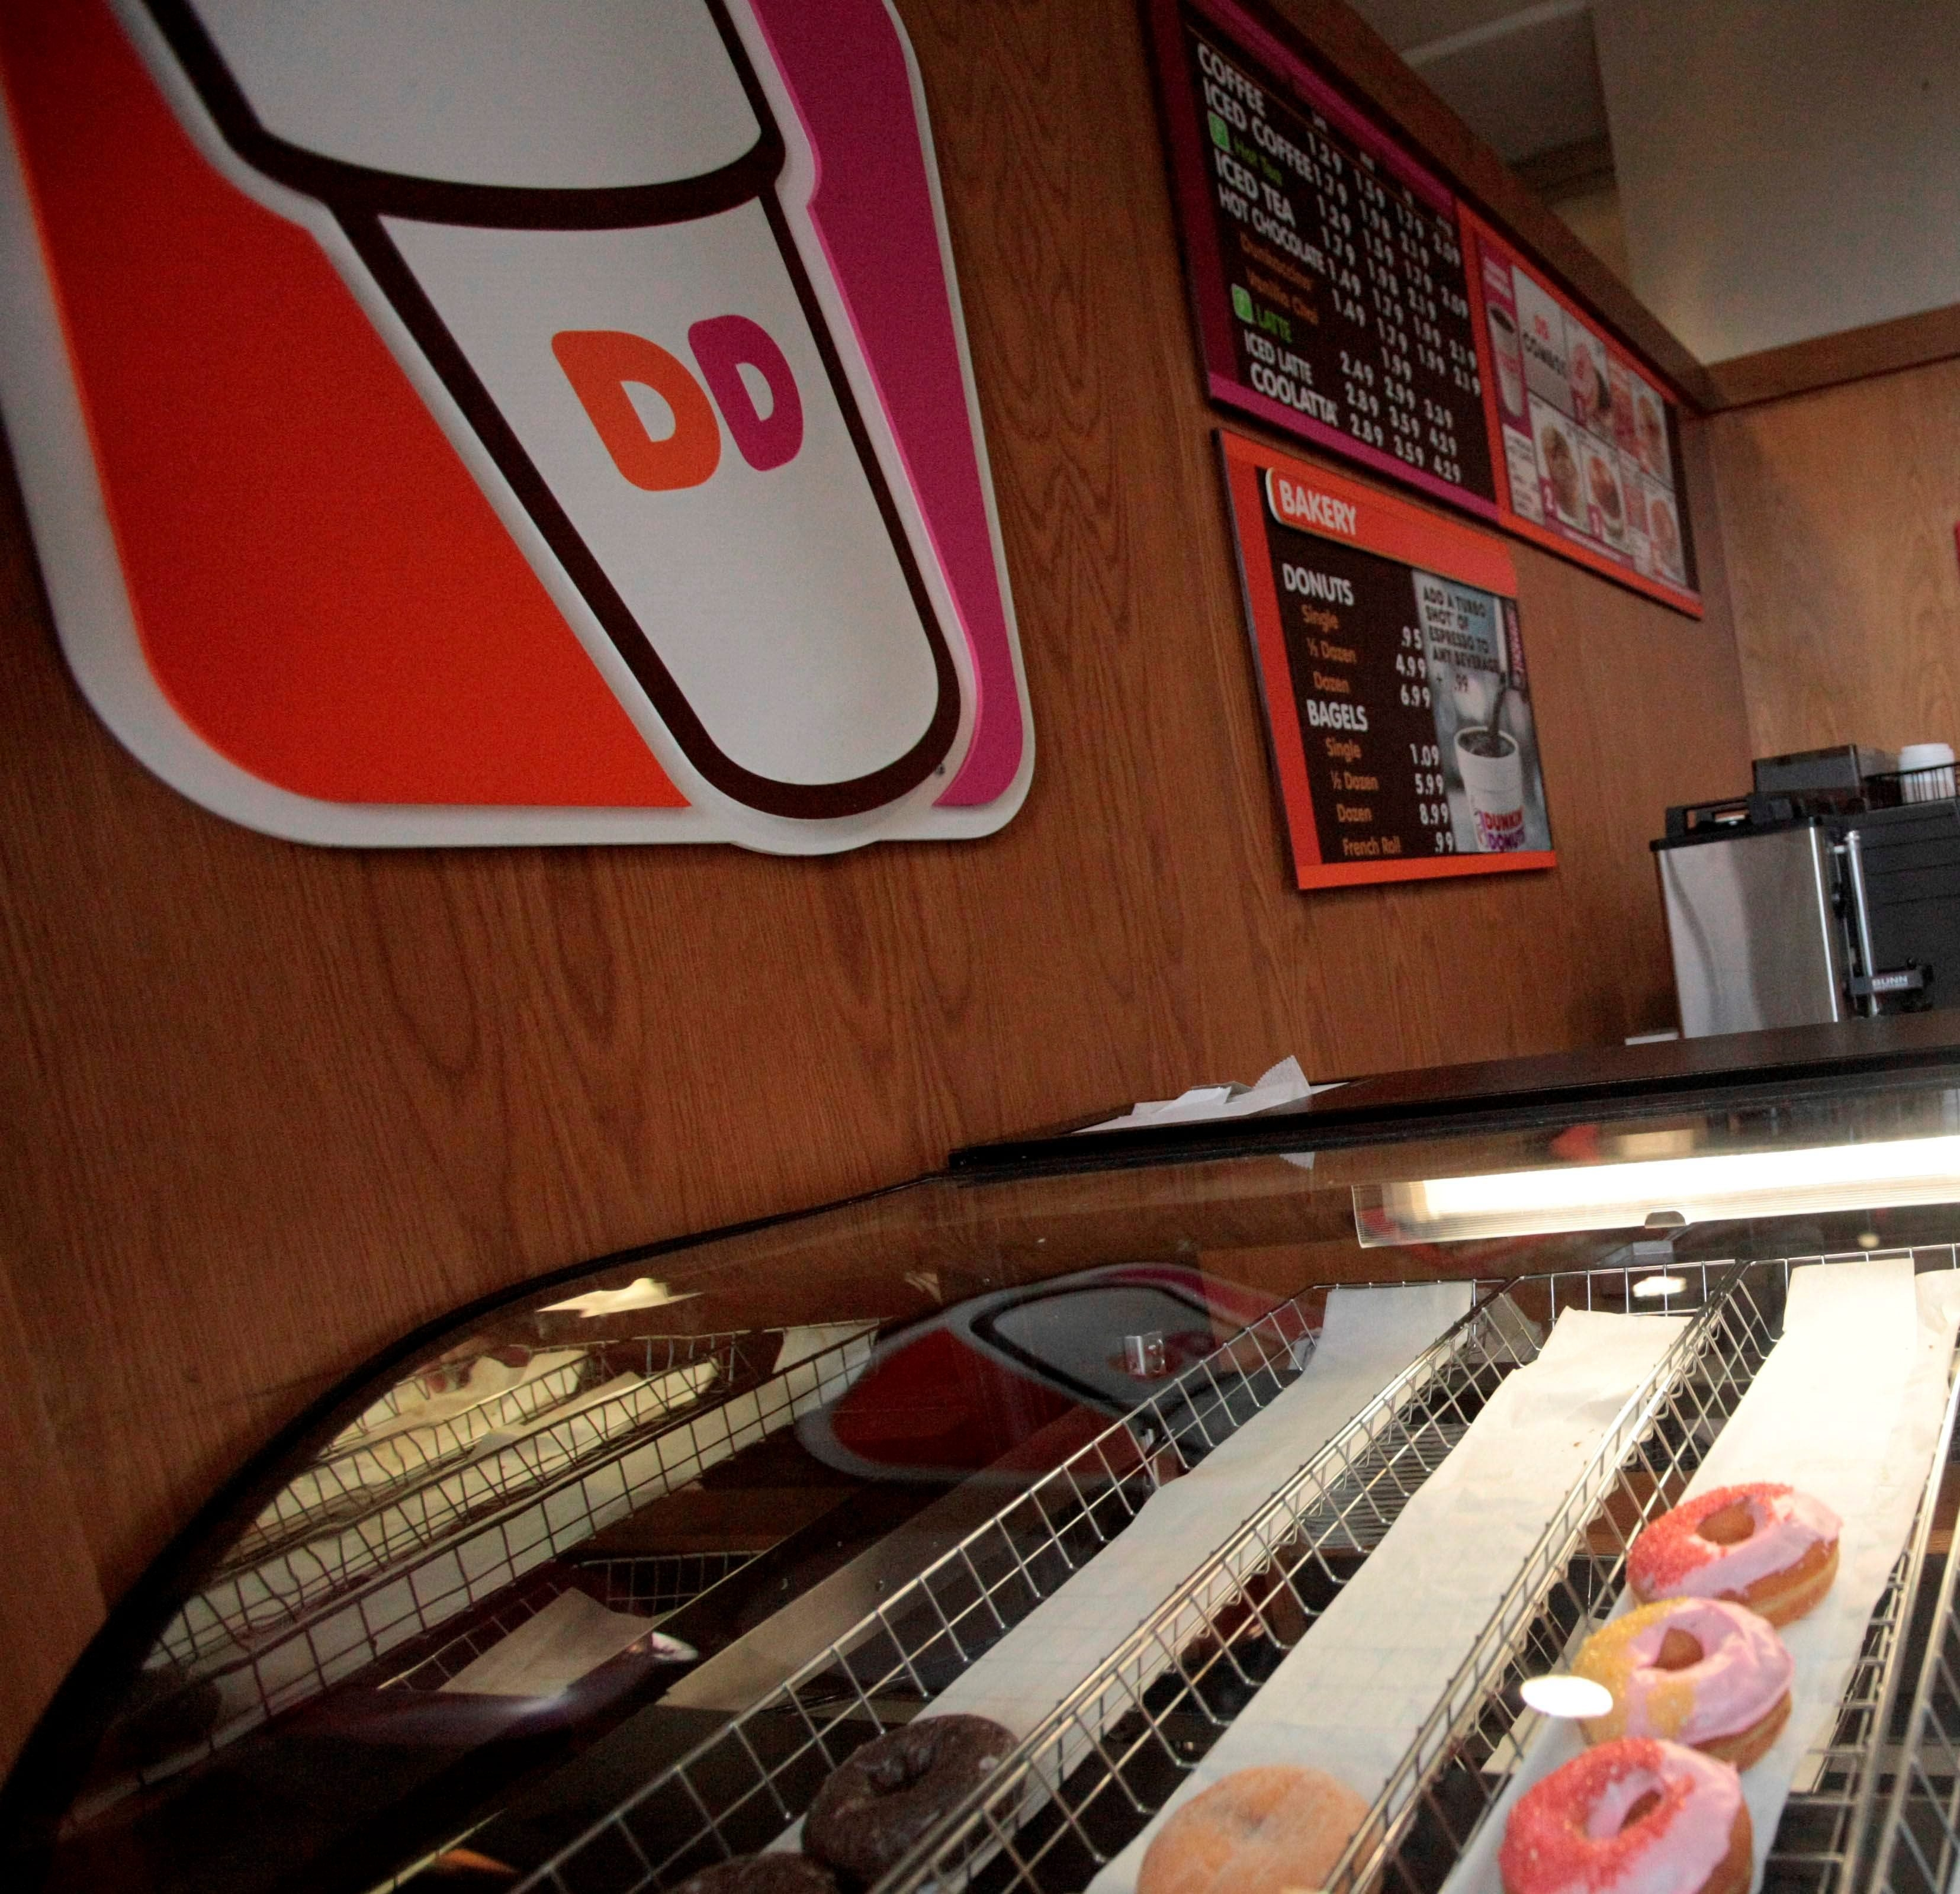 Massachusetts-based Dunkin' Donuts said that the problem at the Main Street, Williamsville, franchise is being addressed.